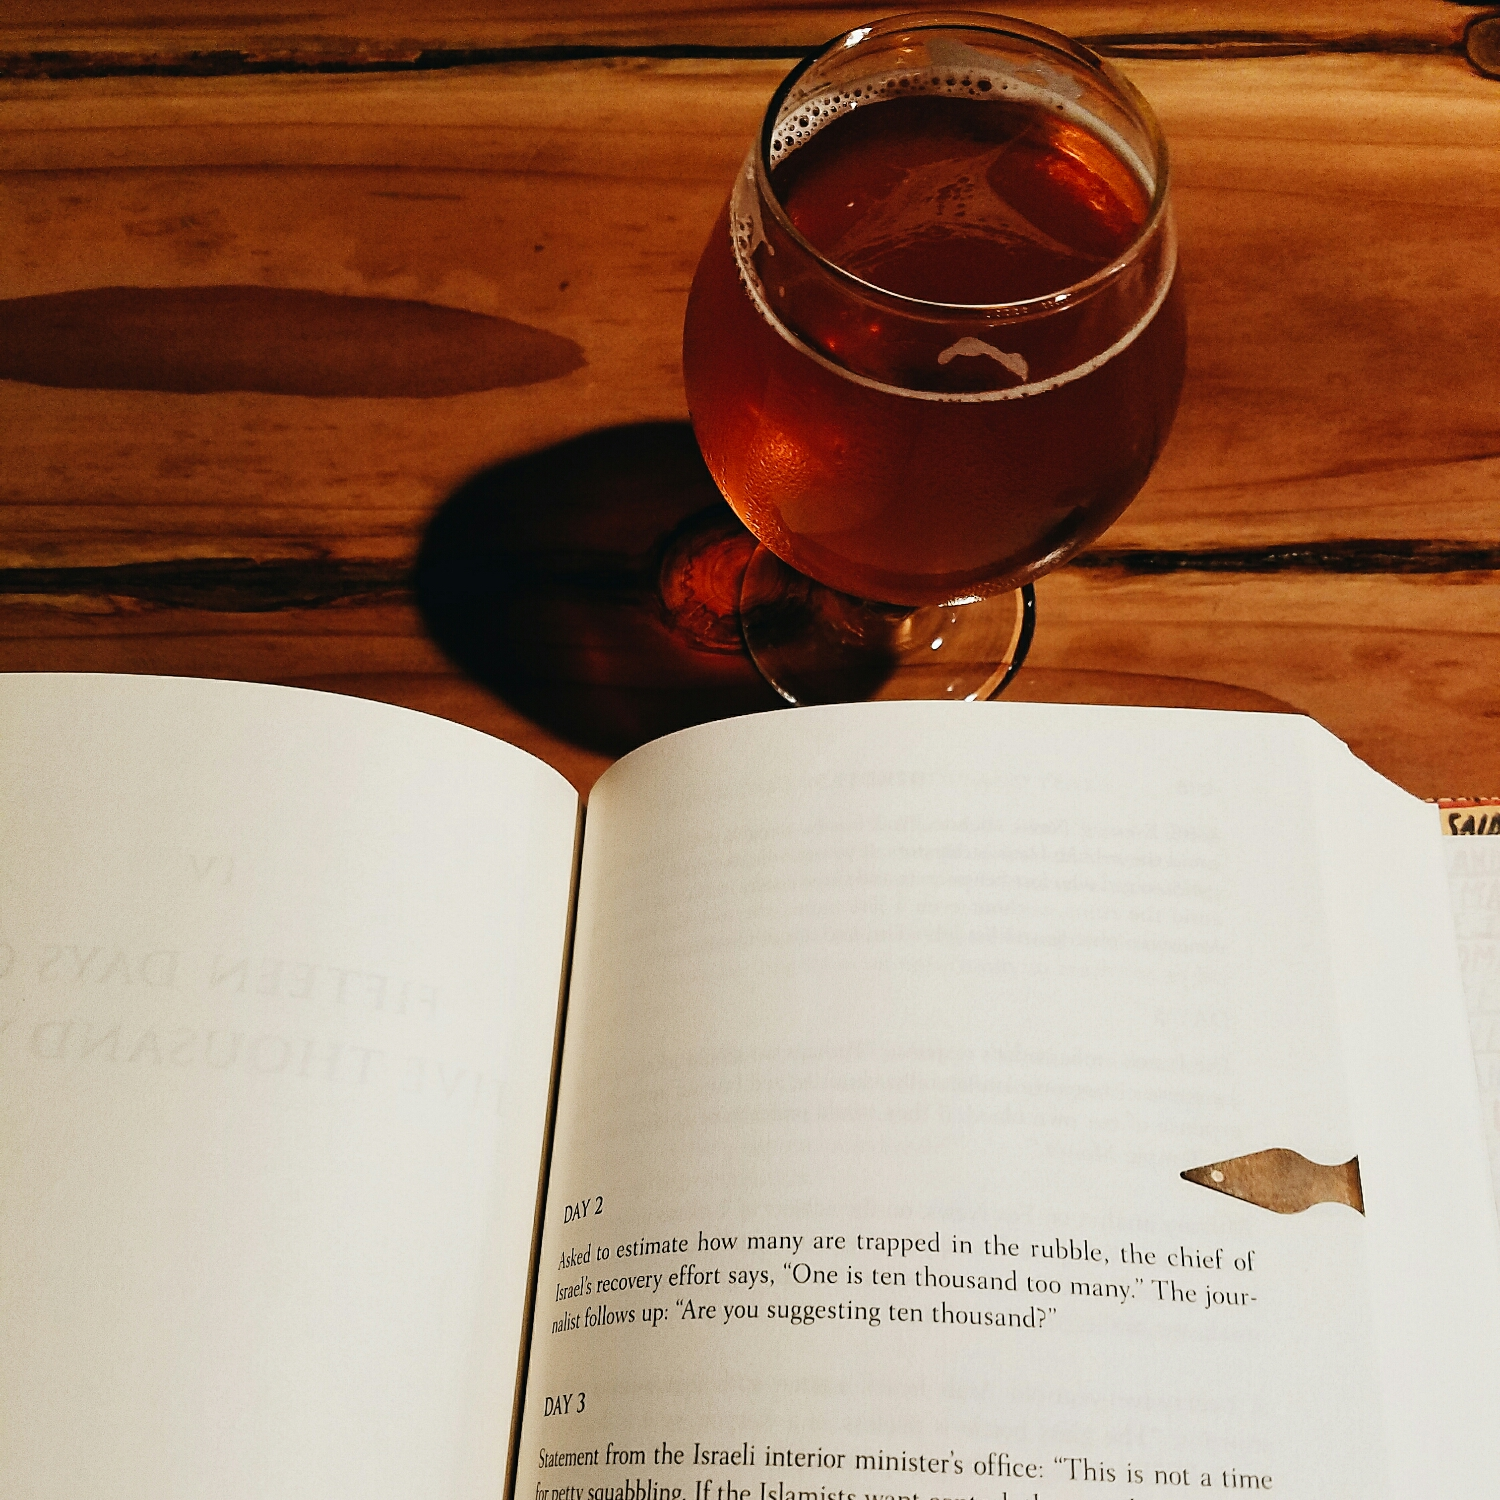 Good beer and a good book: the perfect combo for a rainy night!